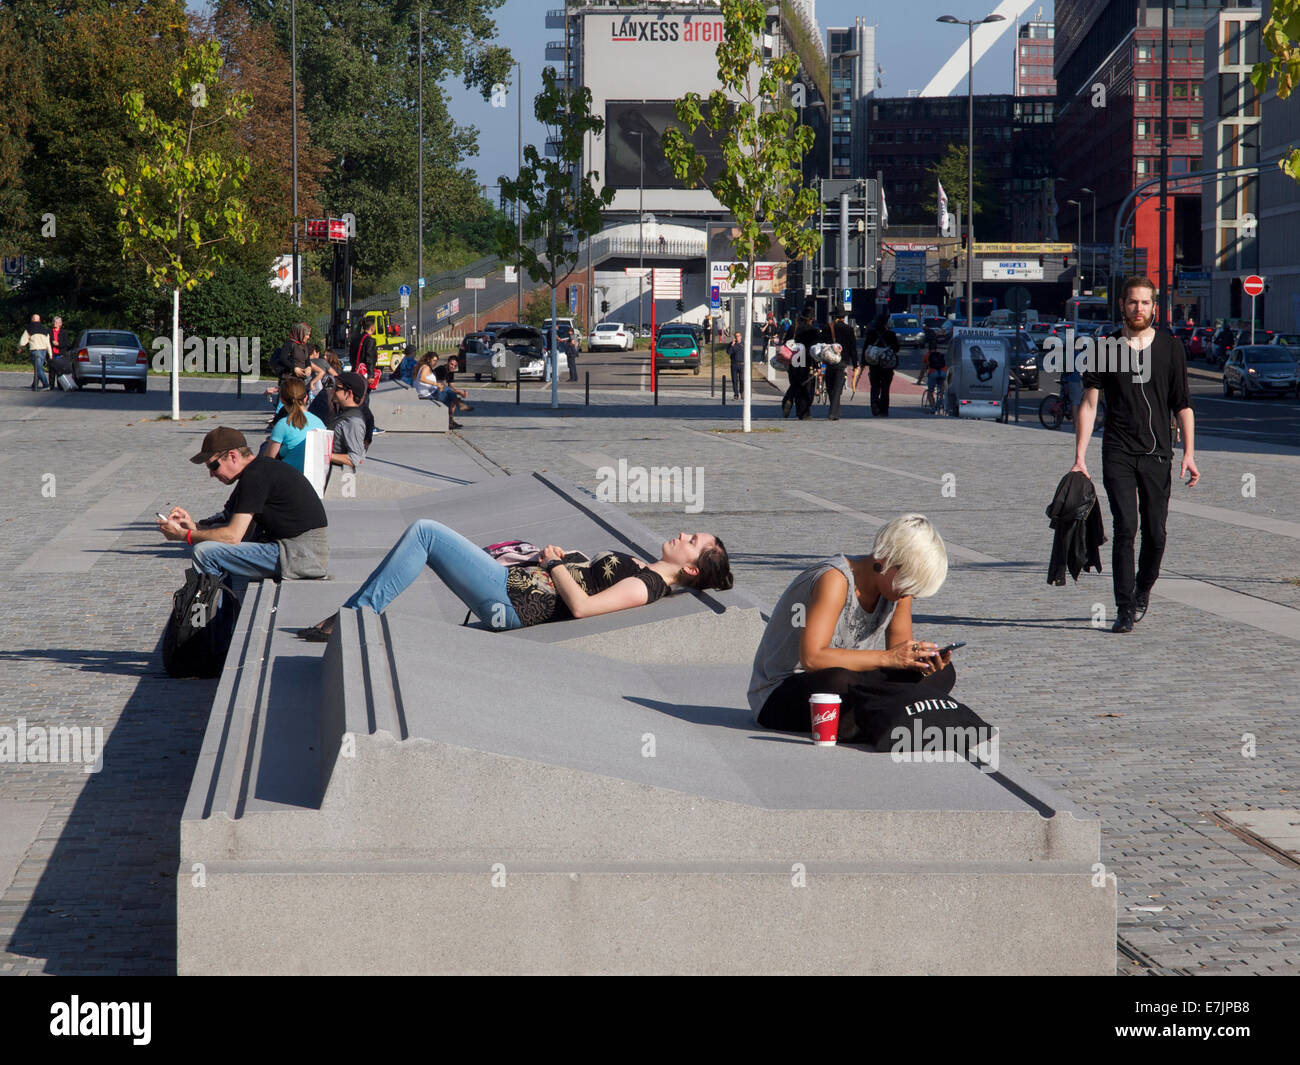 Concrete Street Furniture With Young People Relaxing In The Sun And Stock Photo Royalty Free